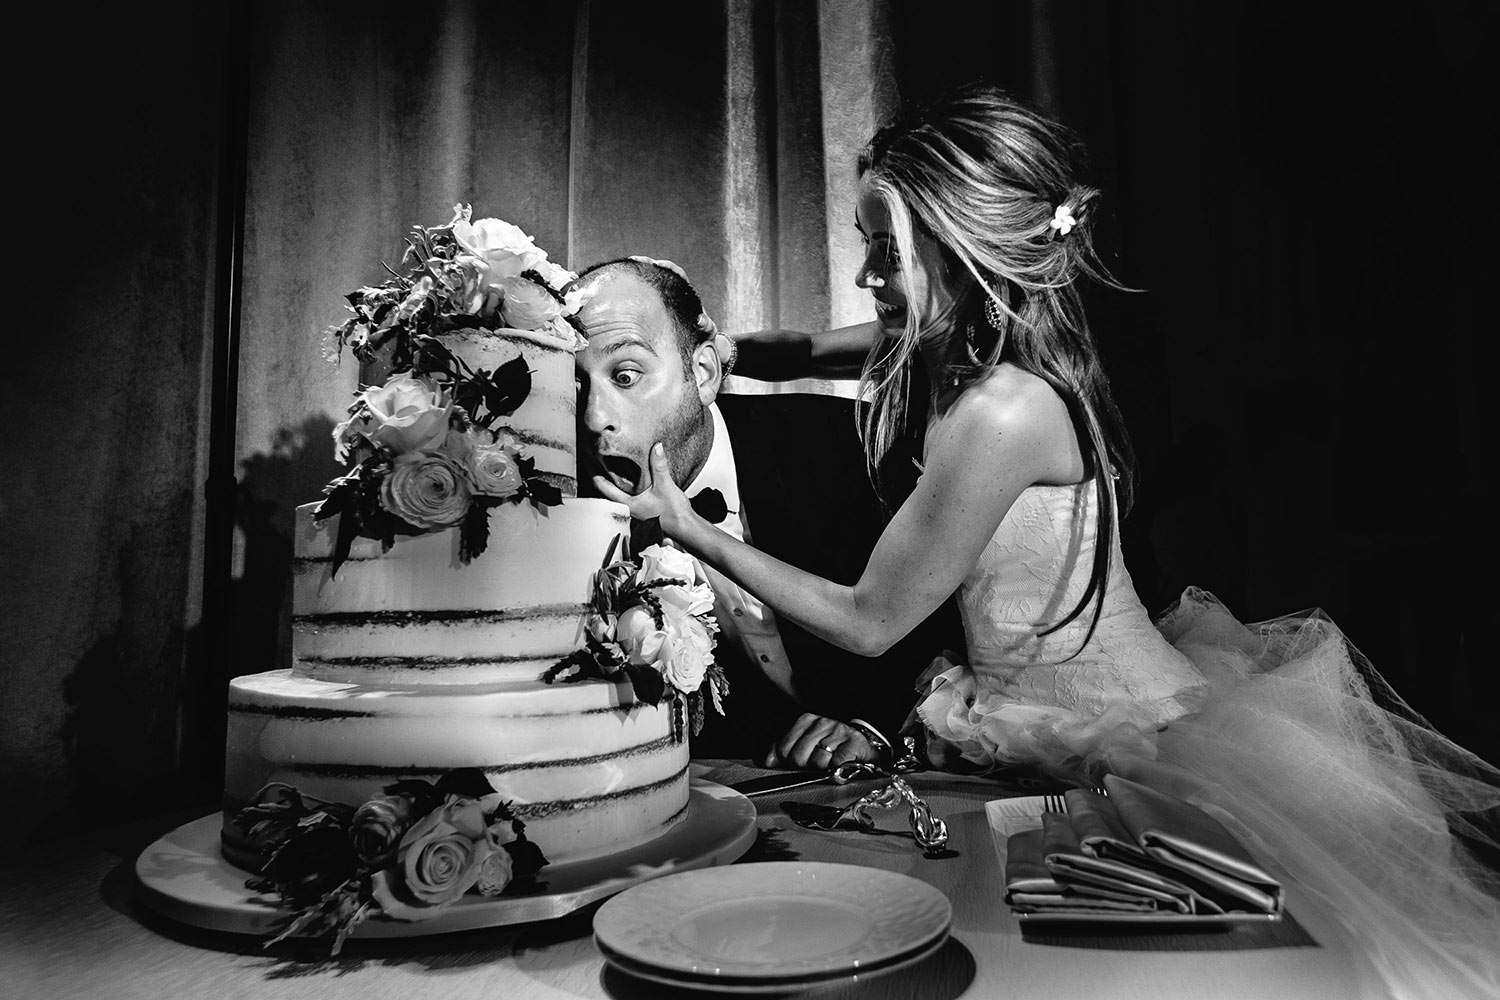 Bride smashes groom face into wedding cake - photo by Callaway Gable - Los Angeles